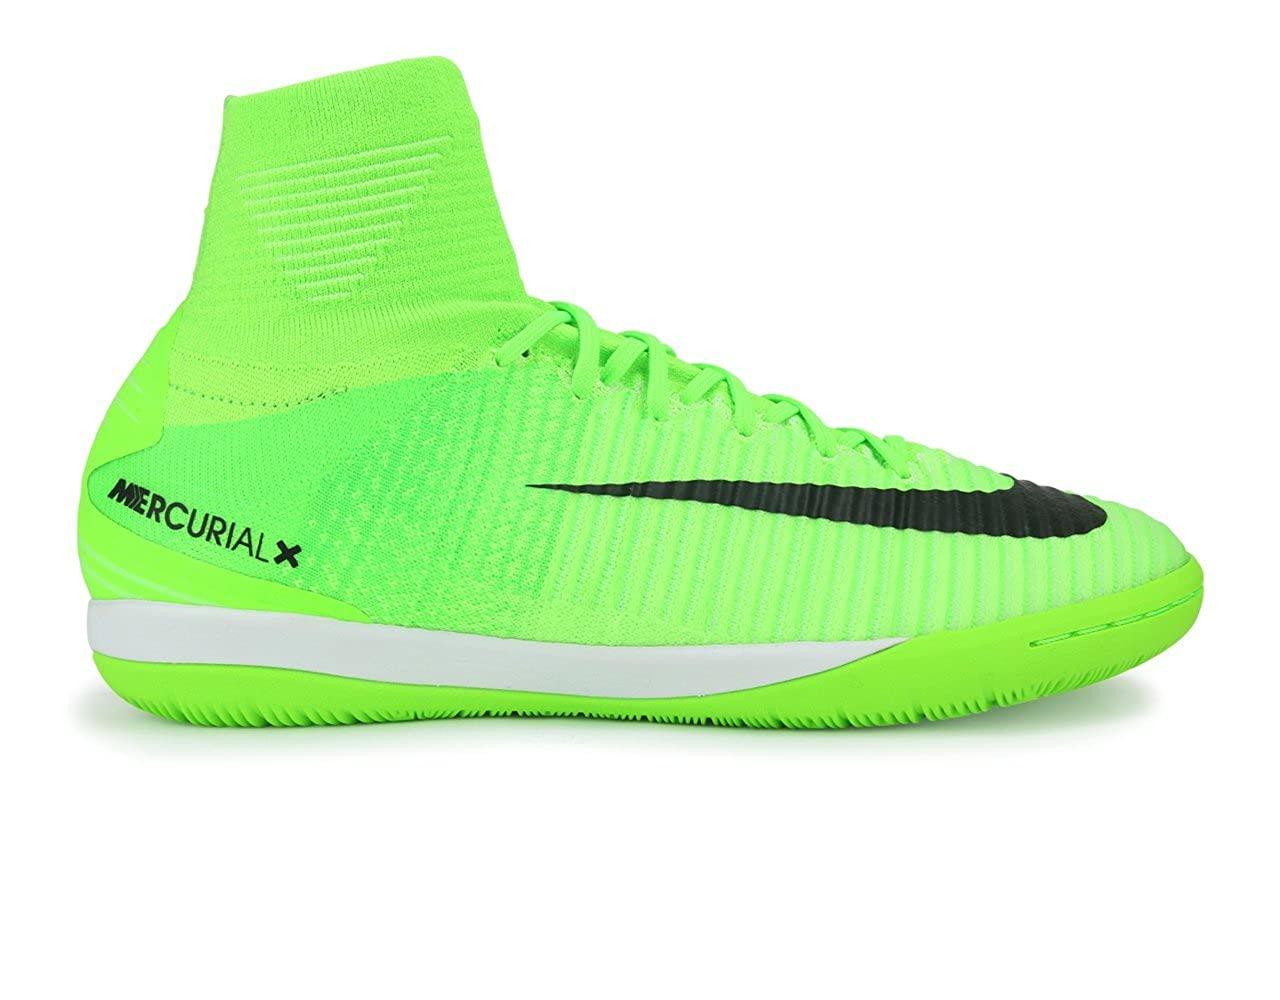 NIKE Men's MercurialX Proximo II Dynamic Fit Indoor Soccer Shoes Electric Green/Black/Flash Lime Soccer Shoes B06XH5PJ1C 10 N US